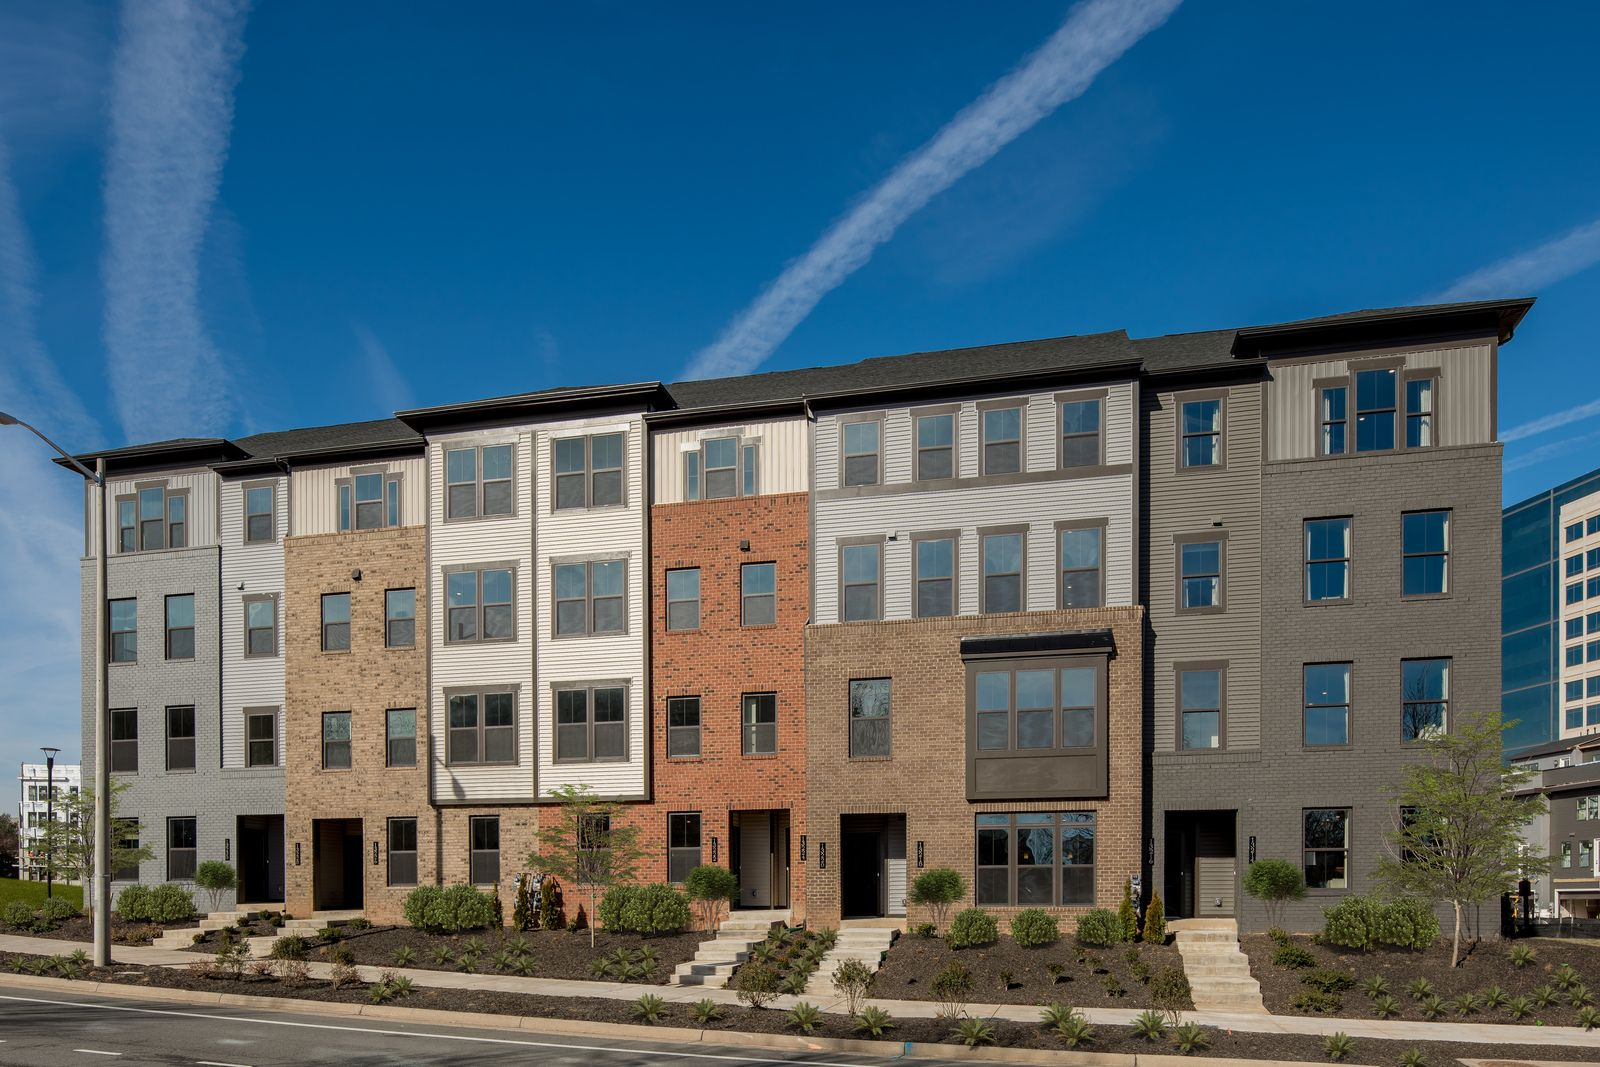 WELCOME TO FOSTER'S GLEN TOWNHOME-STYLE CONDOS - FROM THE MID $500S!